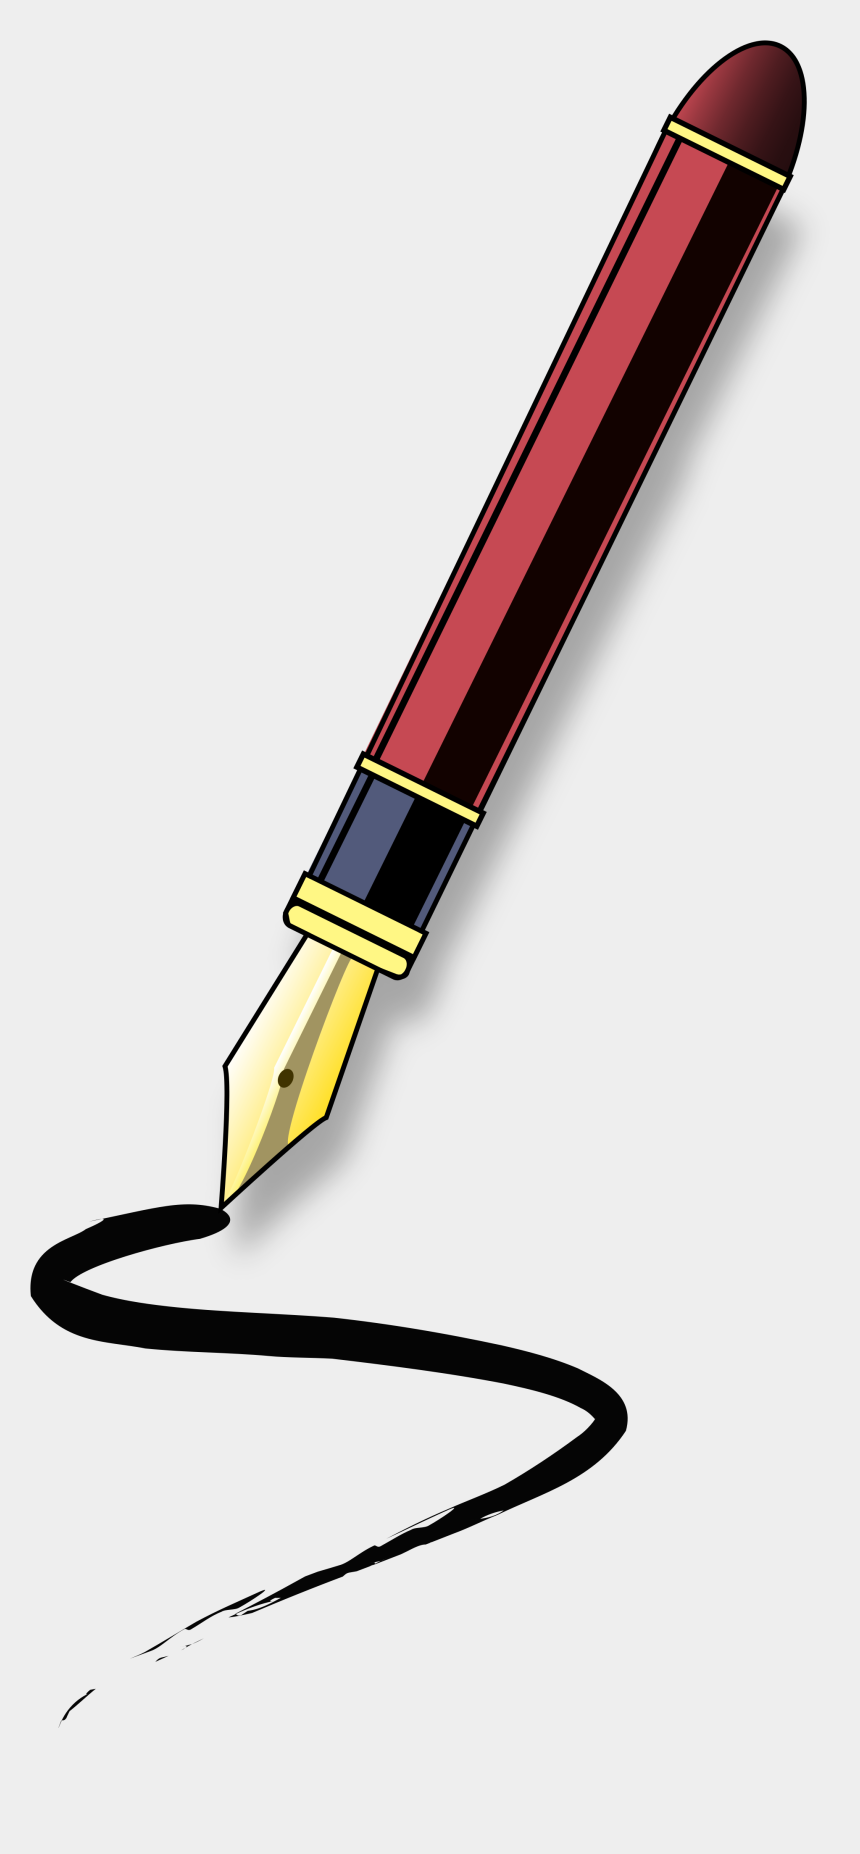 pen clipart, Cartoons - File Stylo Wikimedia Commons Filestylosvg - Ink Pen Clipart